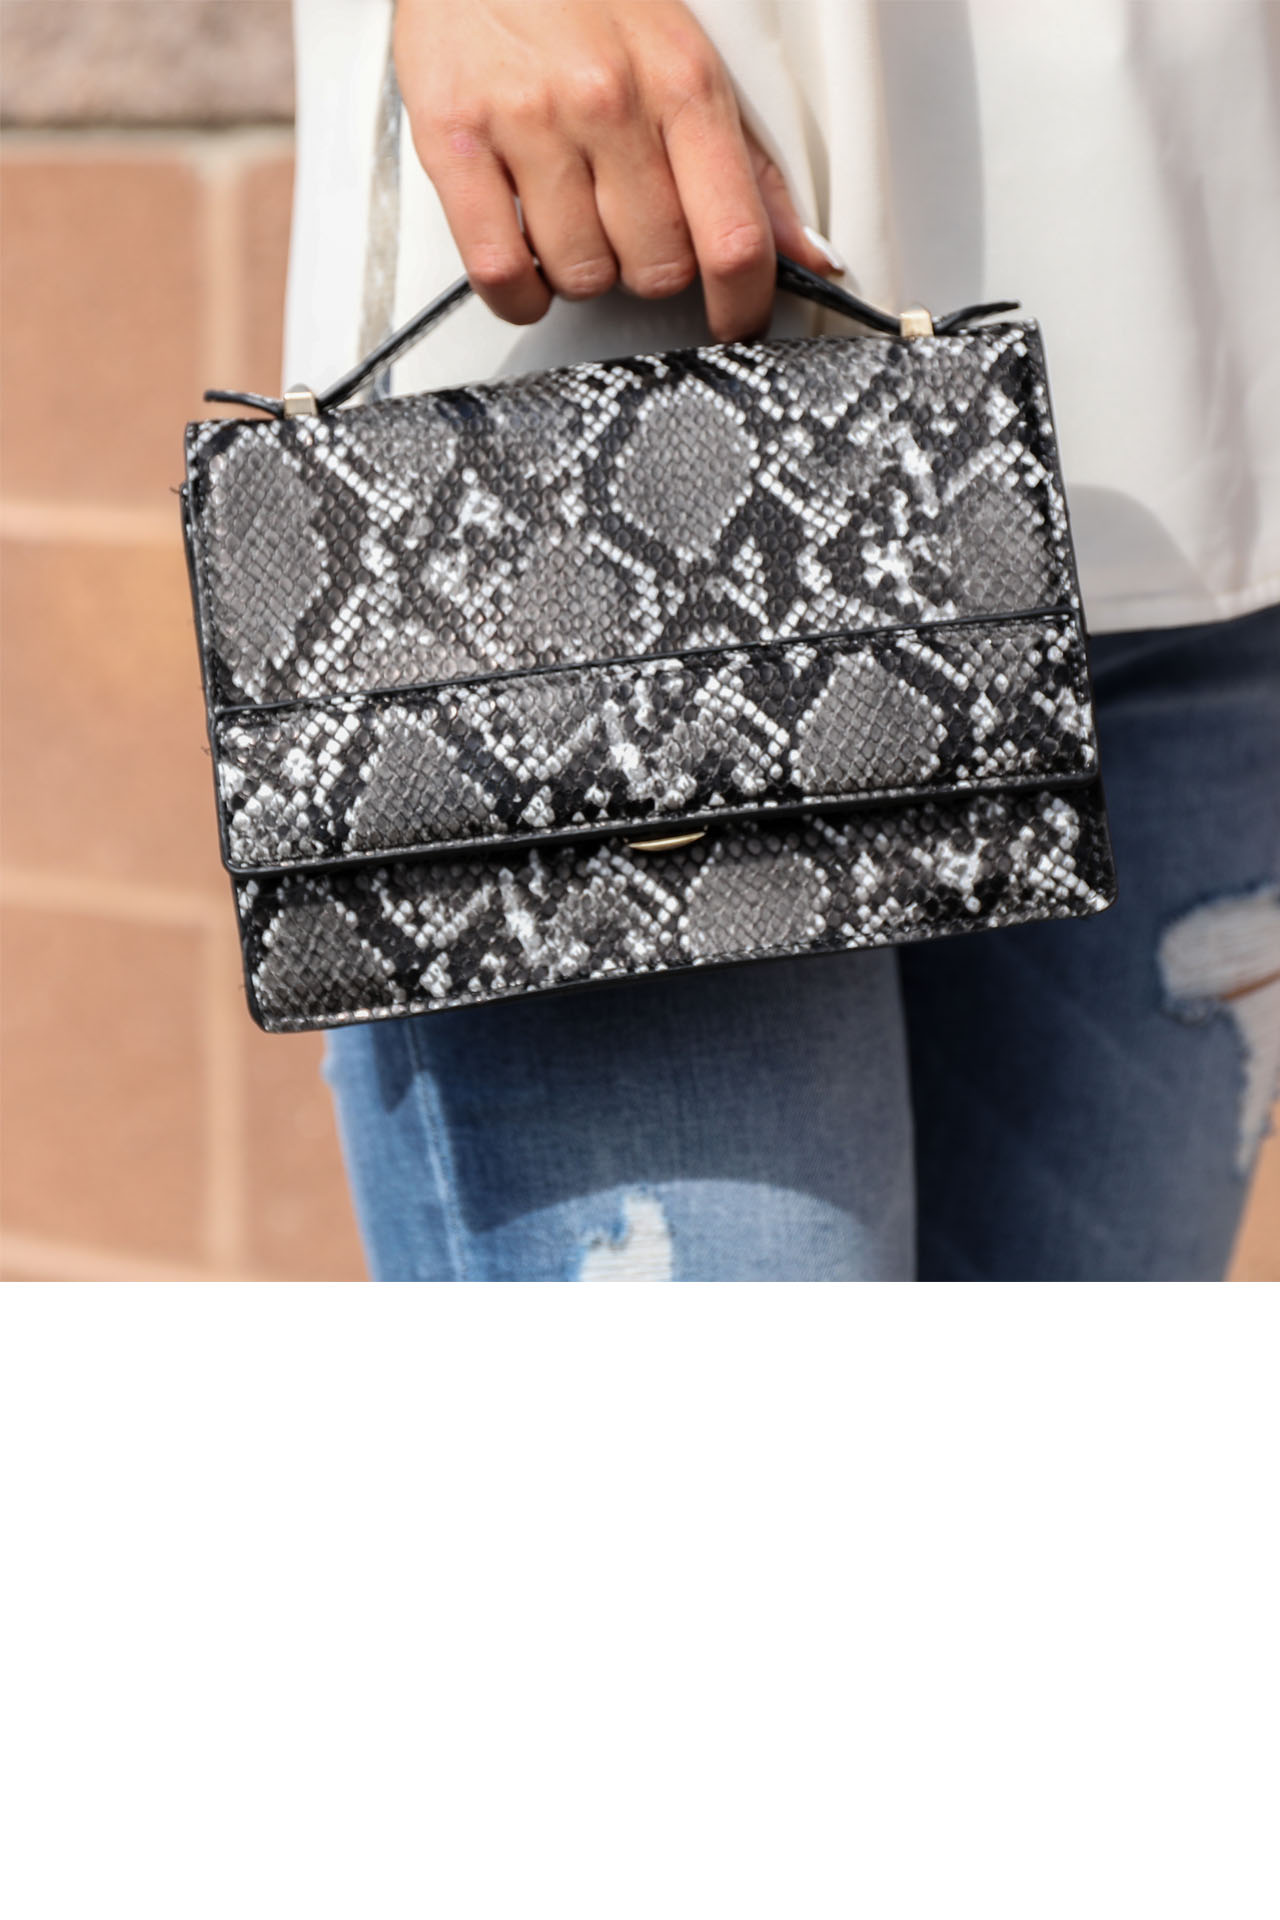 Charcoal Faux Snake Skin Clutch with Detachable Chain Strap